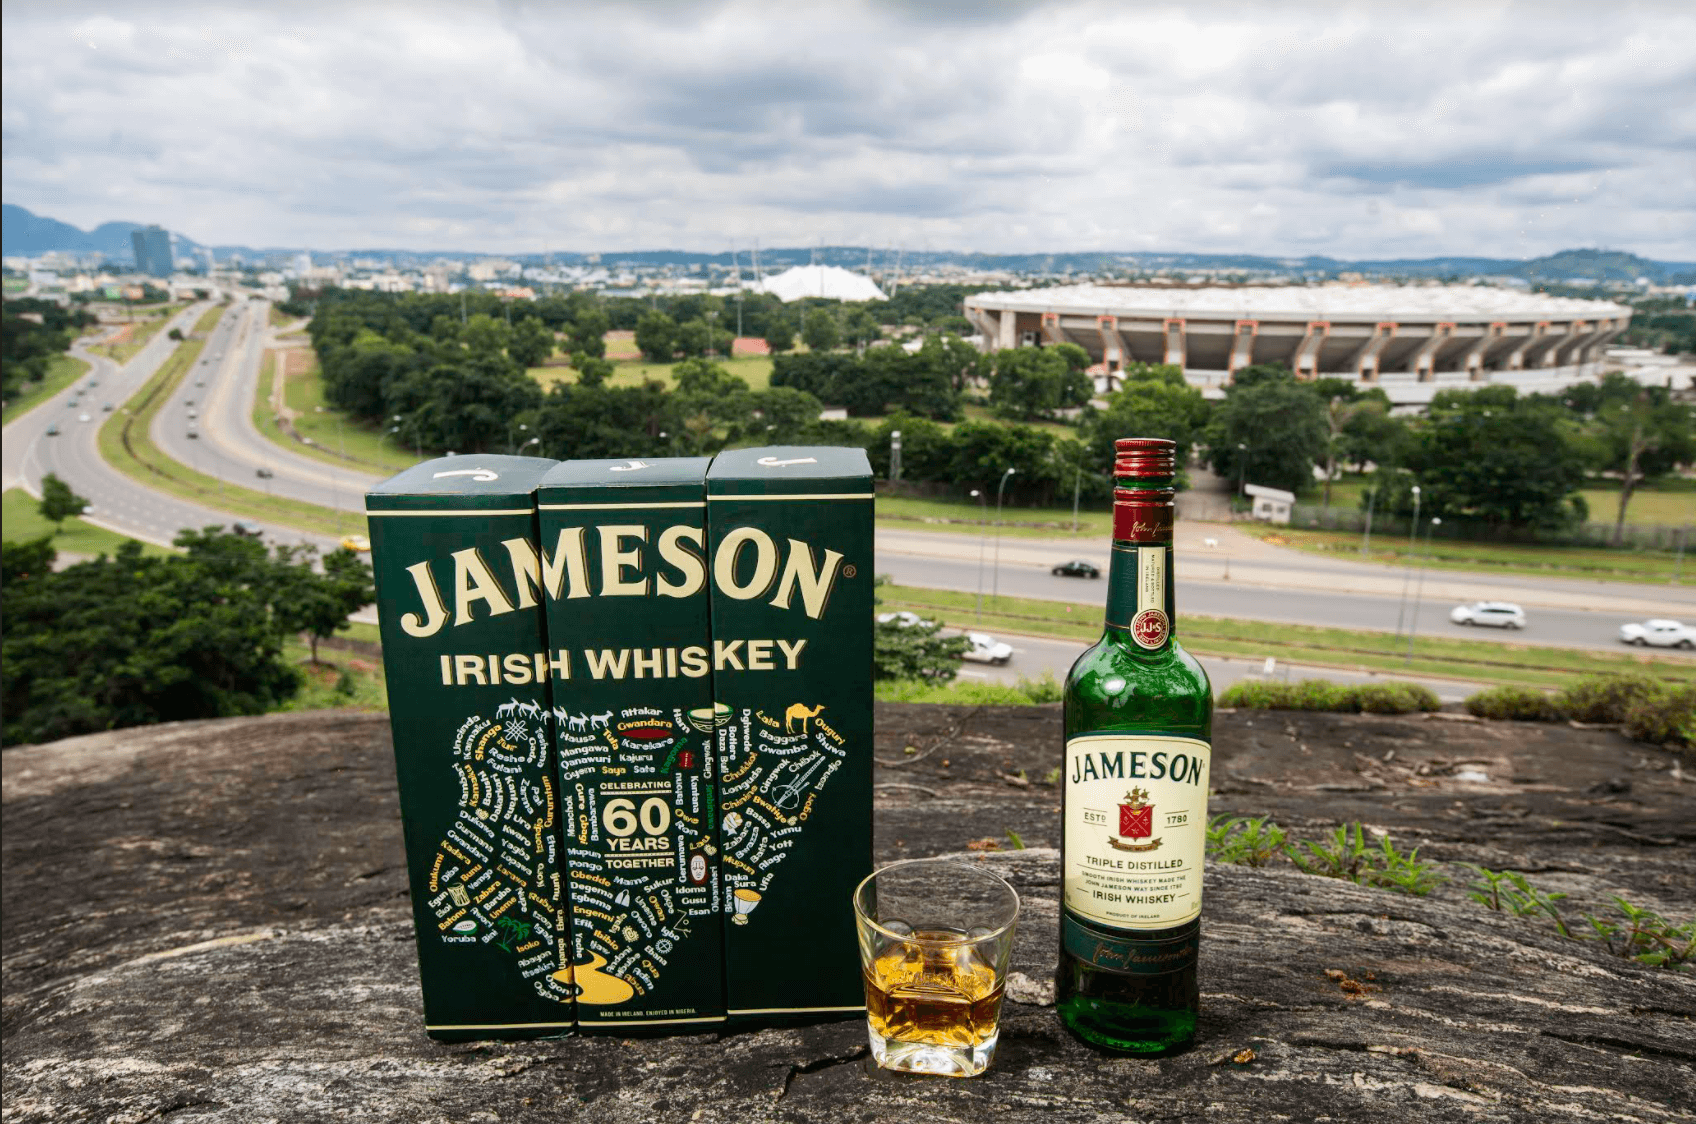 All the details of Jameson's special Independence Day bottle